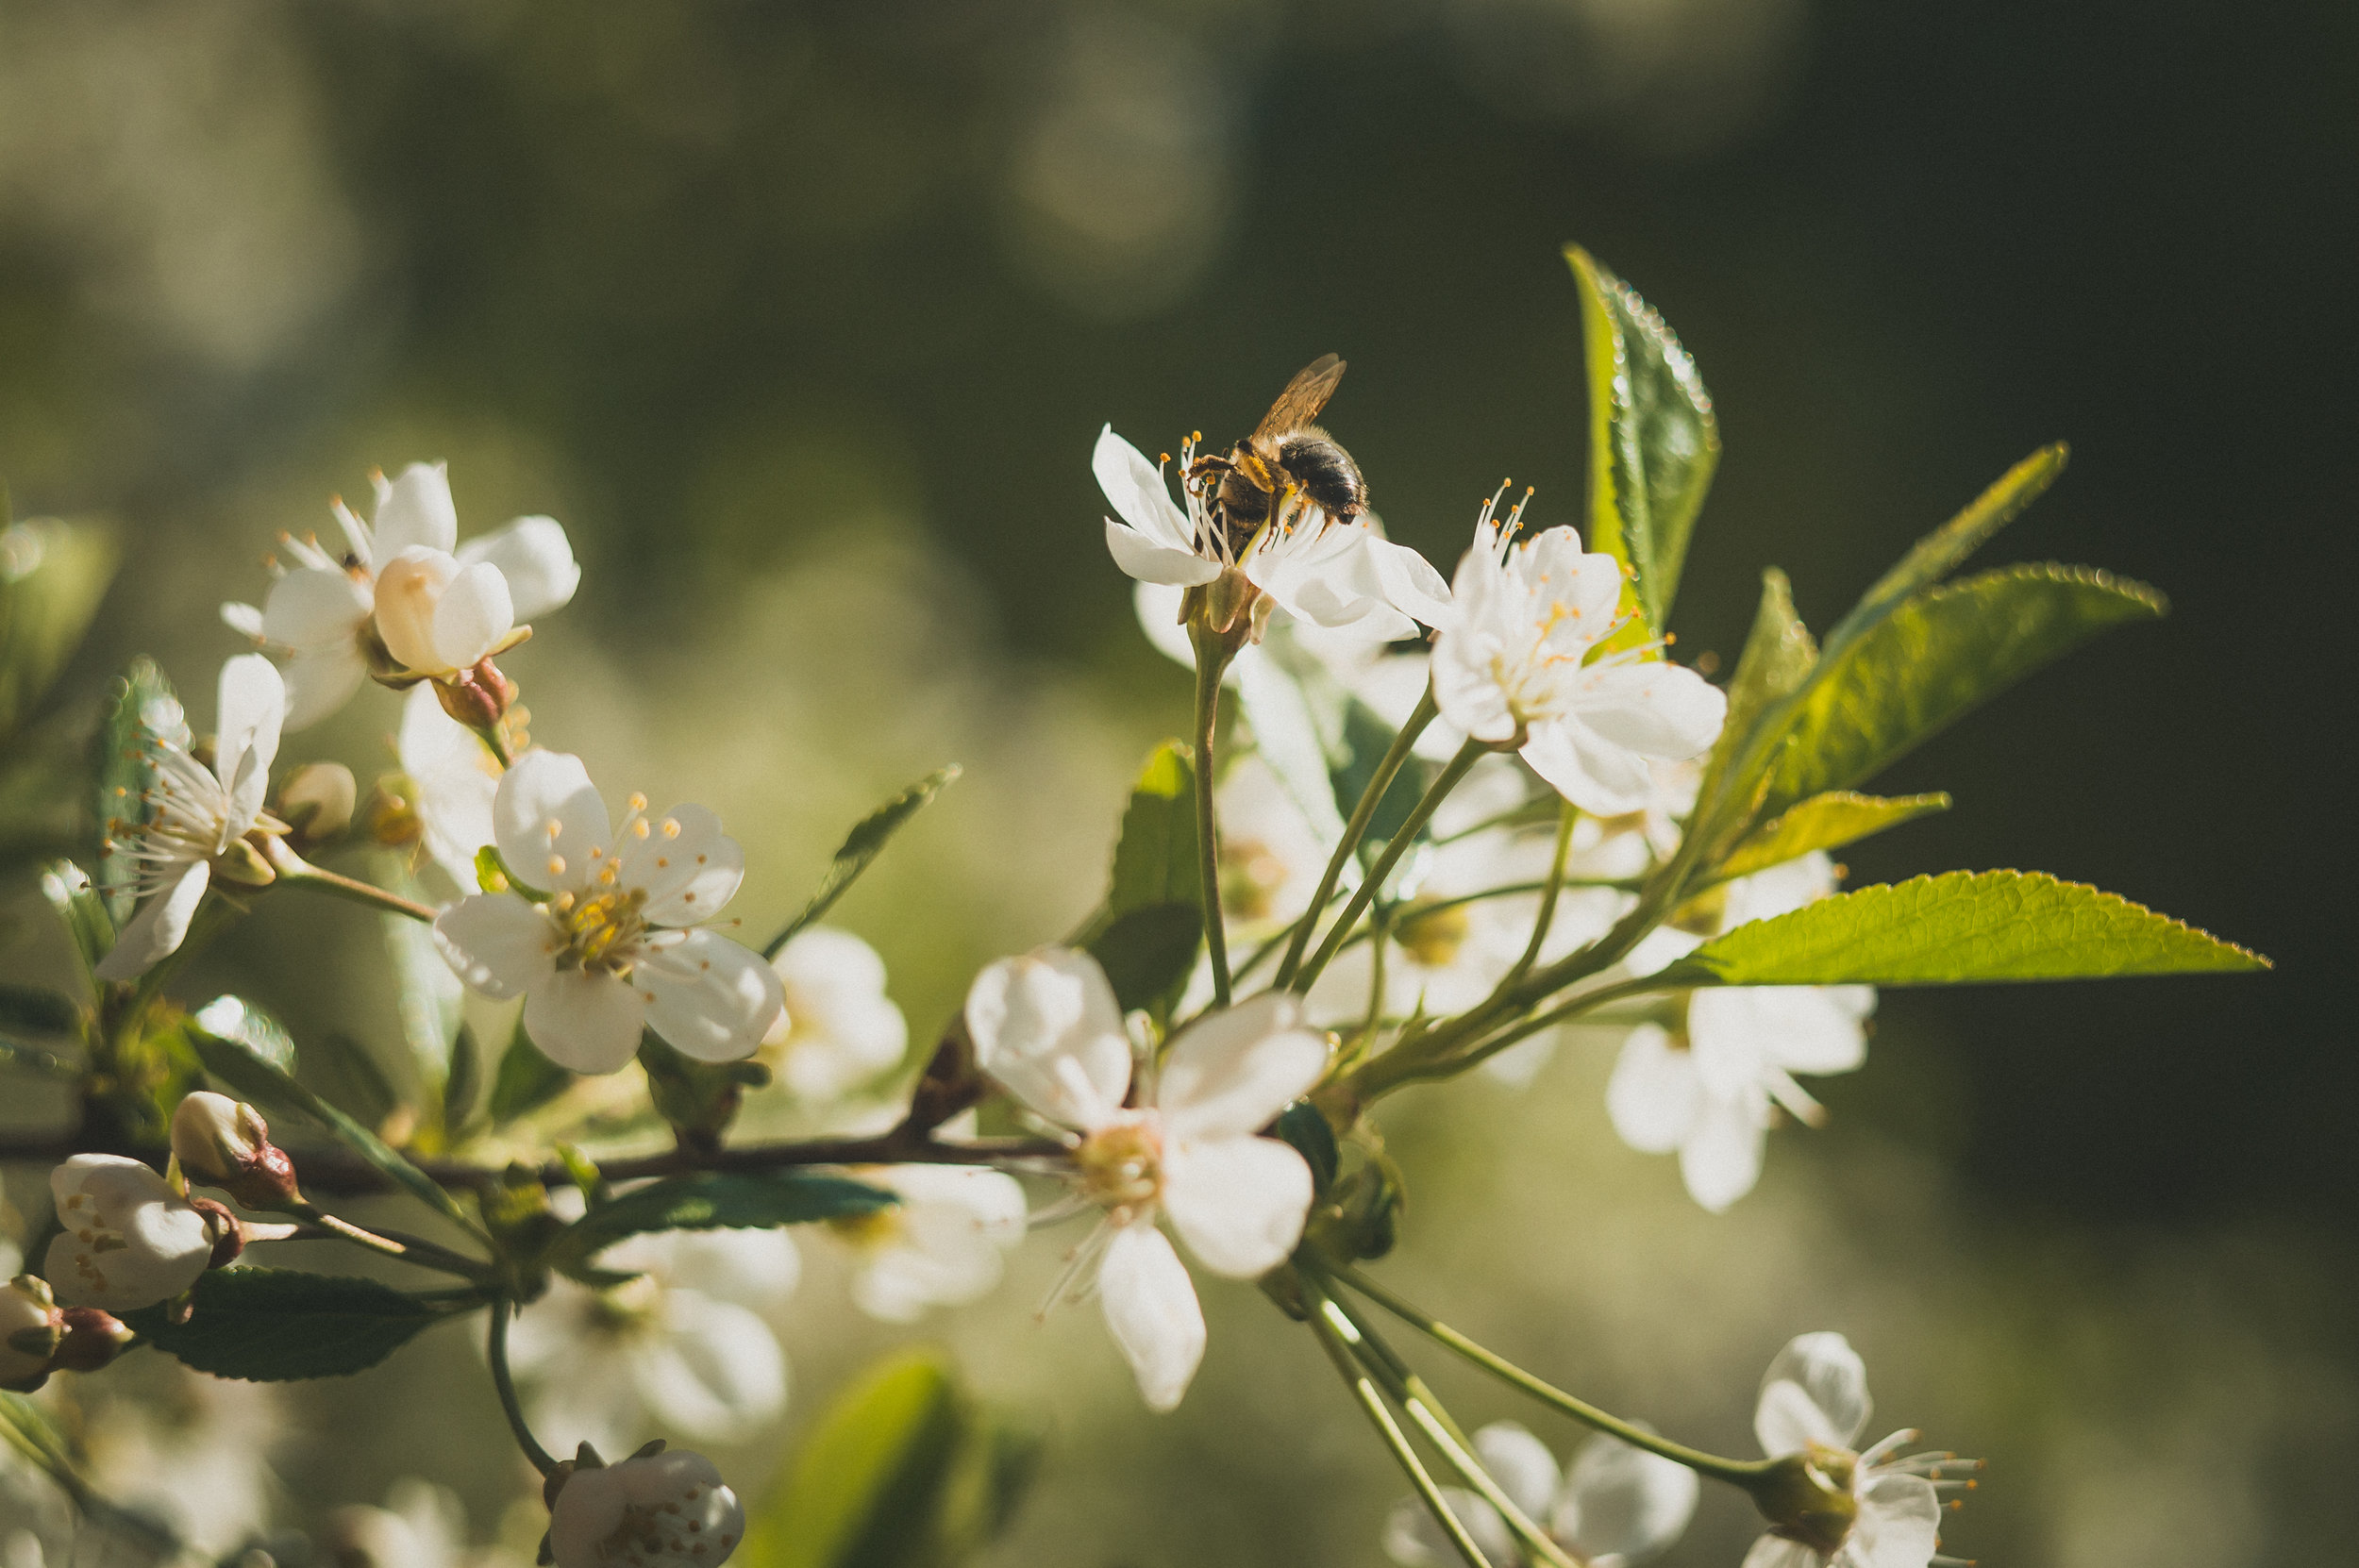 bee-bloom-blooming-blossom-branch-buds-1423635-pxhere.com.jpg